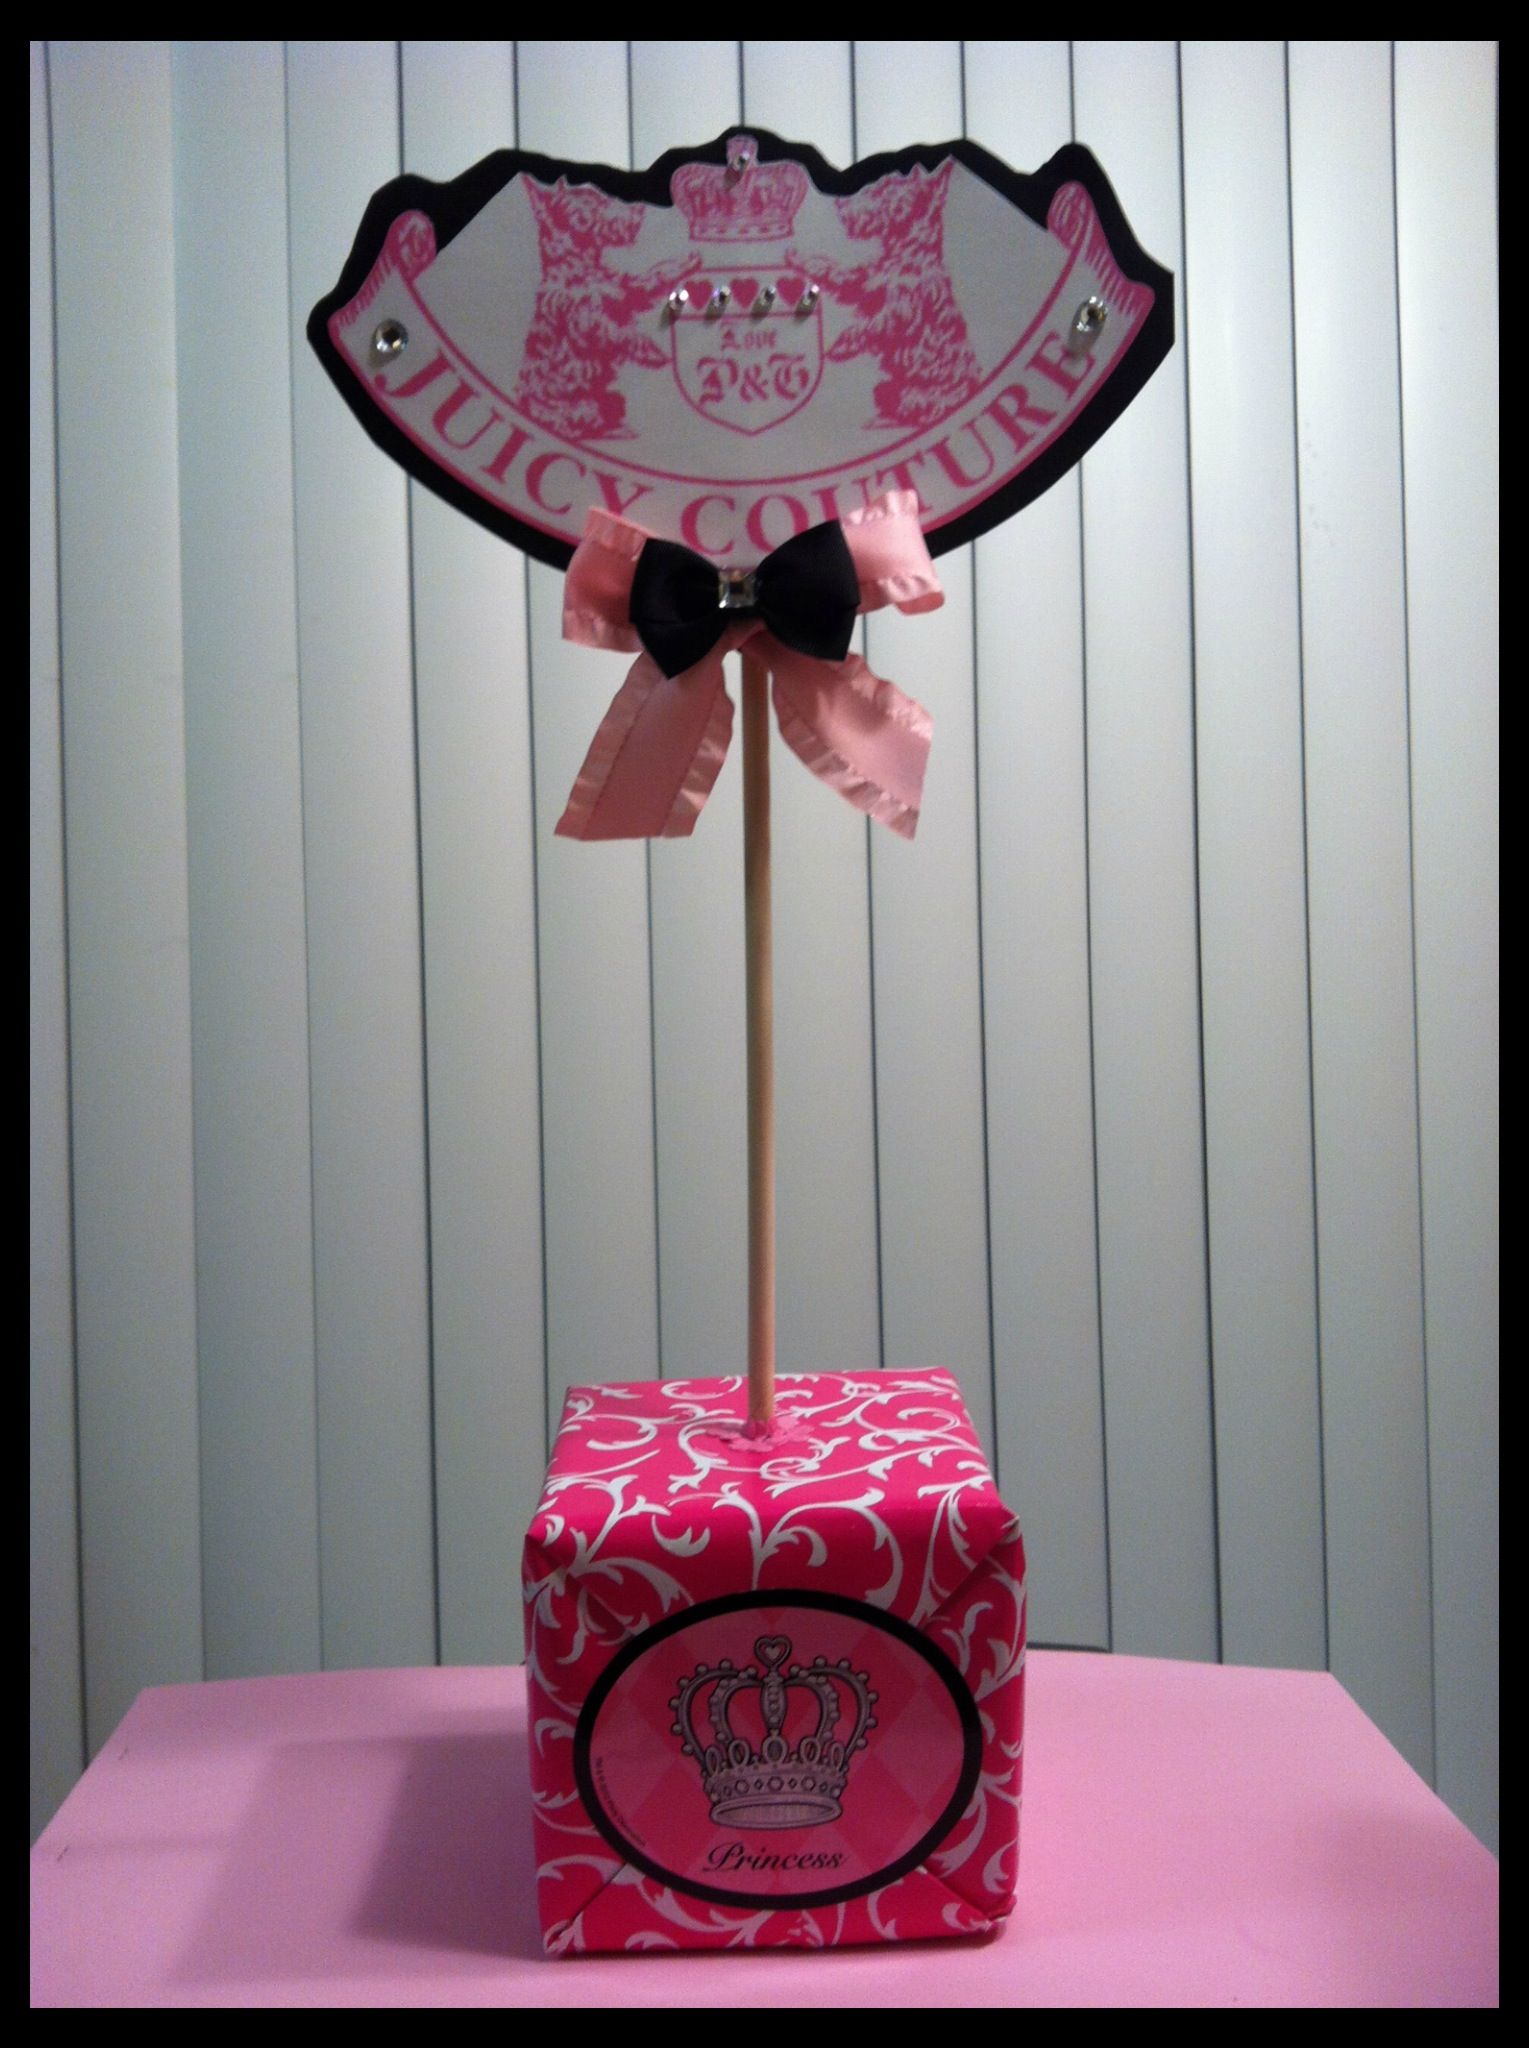 Juicy Couture Theme Centerpiece